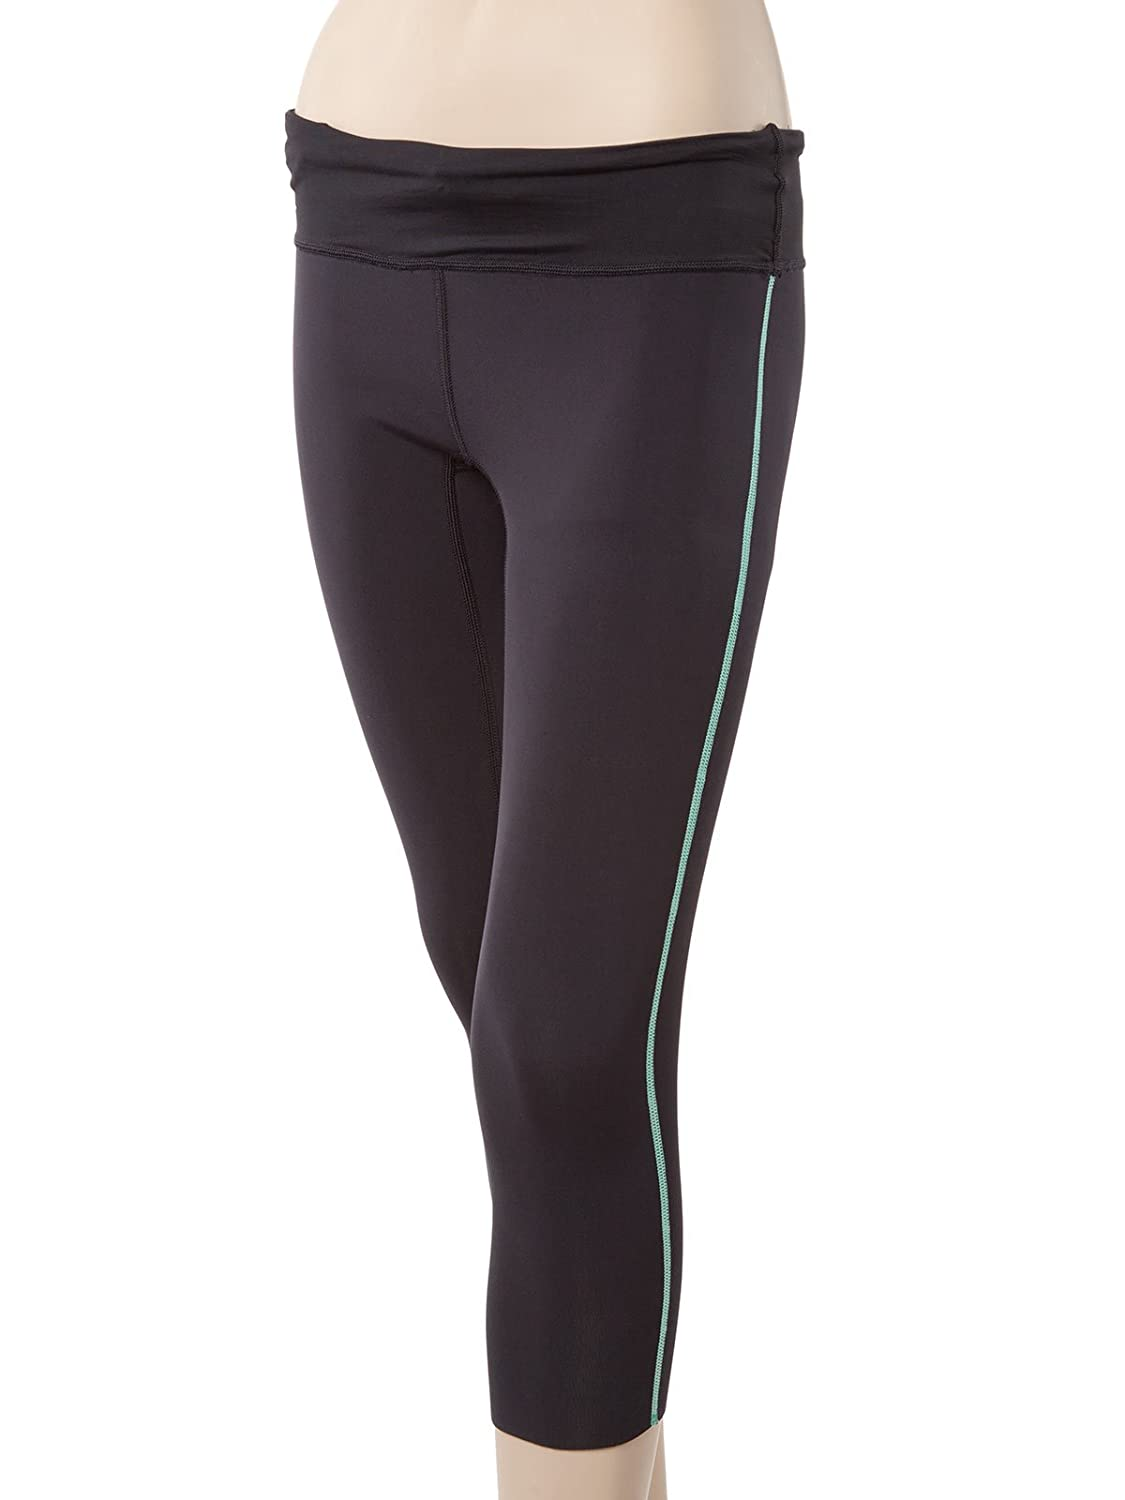 【18%OFF】 O ' (4837IS) Neill Womens 18 Womens Supertechネオプレンカプリレギンス B073V3ZZF9 18 Black/seaglass (4837IS) Black/seaglass (4837IS) 18, MOBBS:4ffd7ec0 --- arianechie.dominiotemporario.com